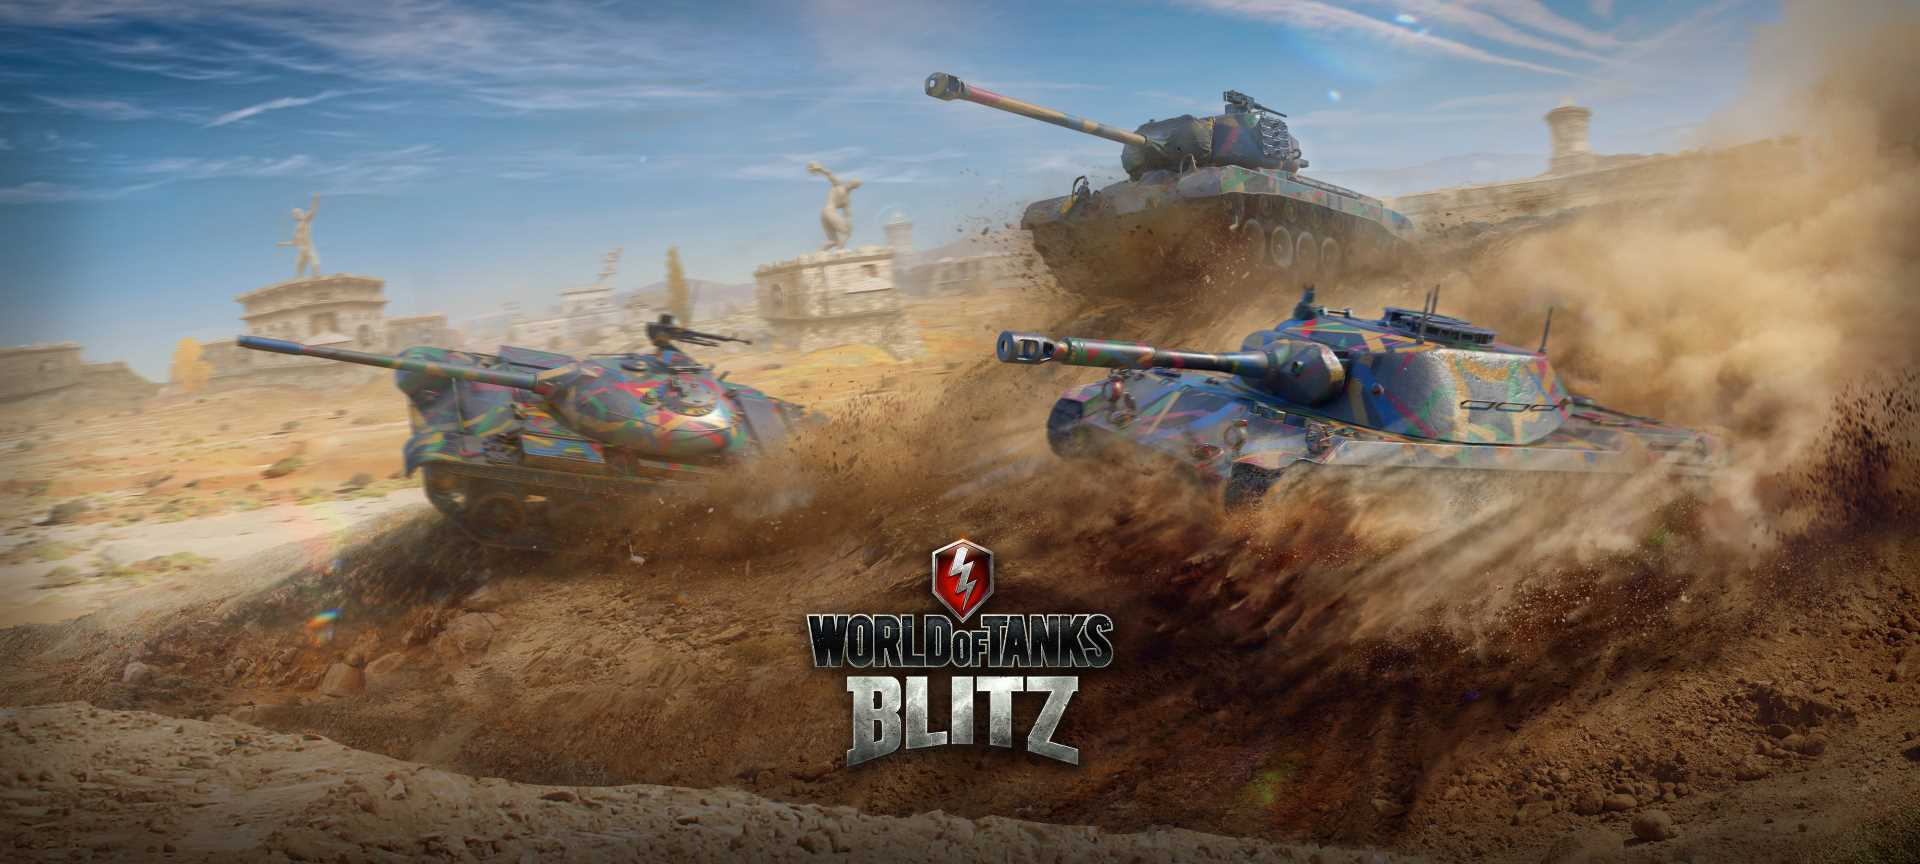 When to watch the WoT Blitz Twister Cup 2019